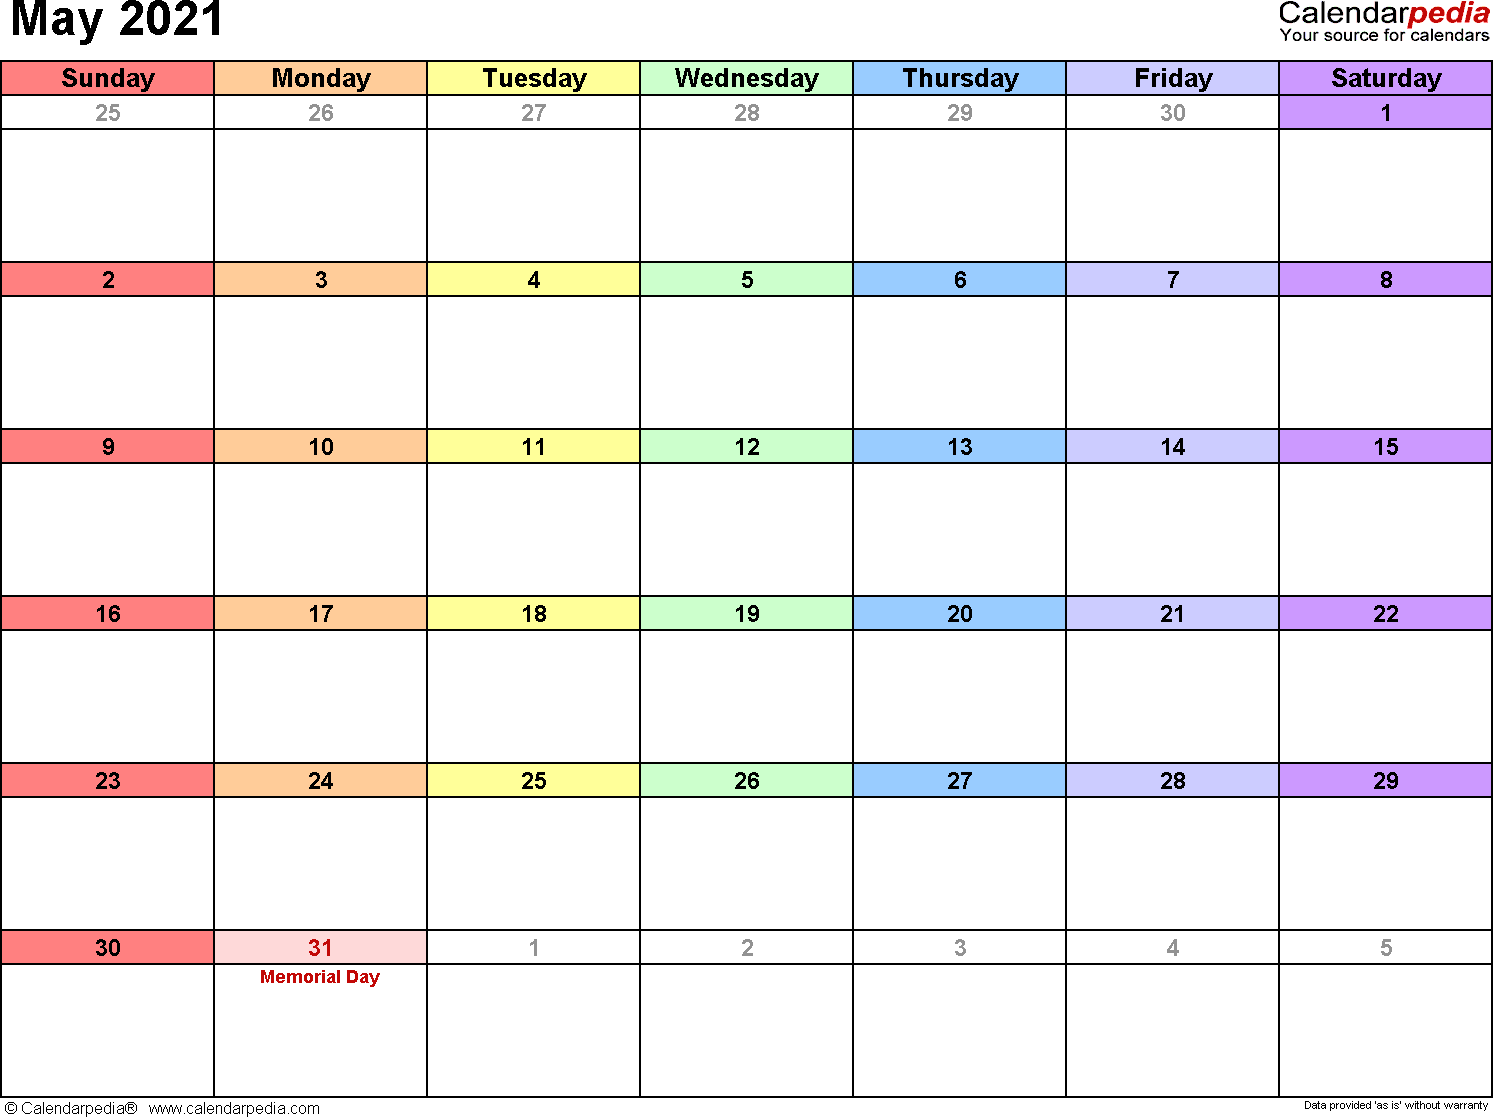 May 2021 - calendar templates for Word, Excel and PDF